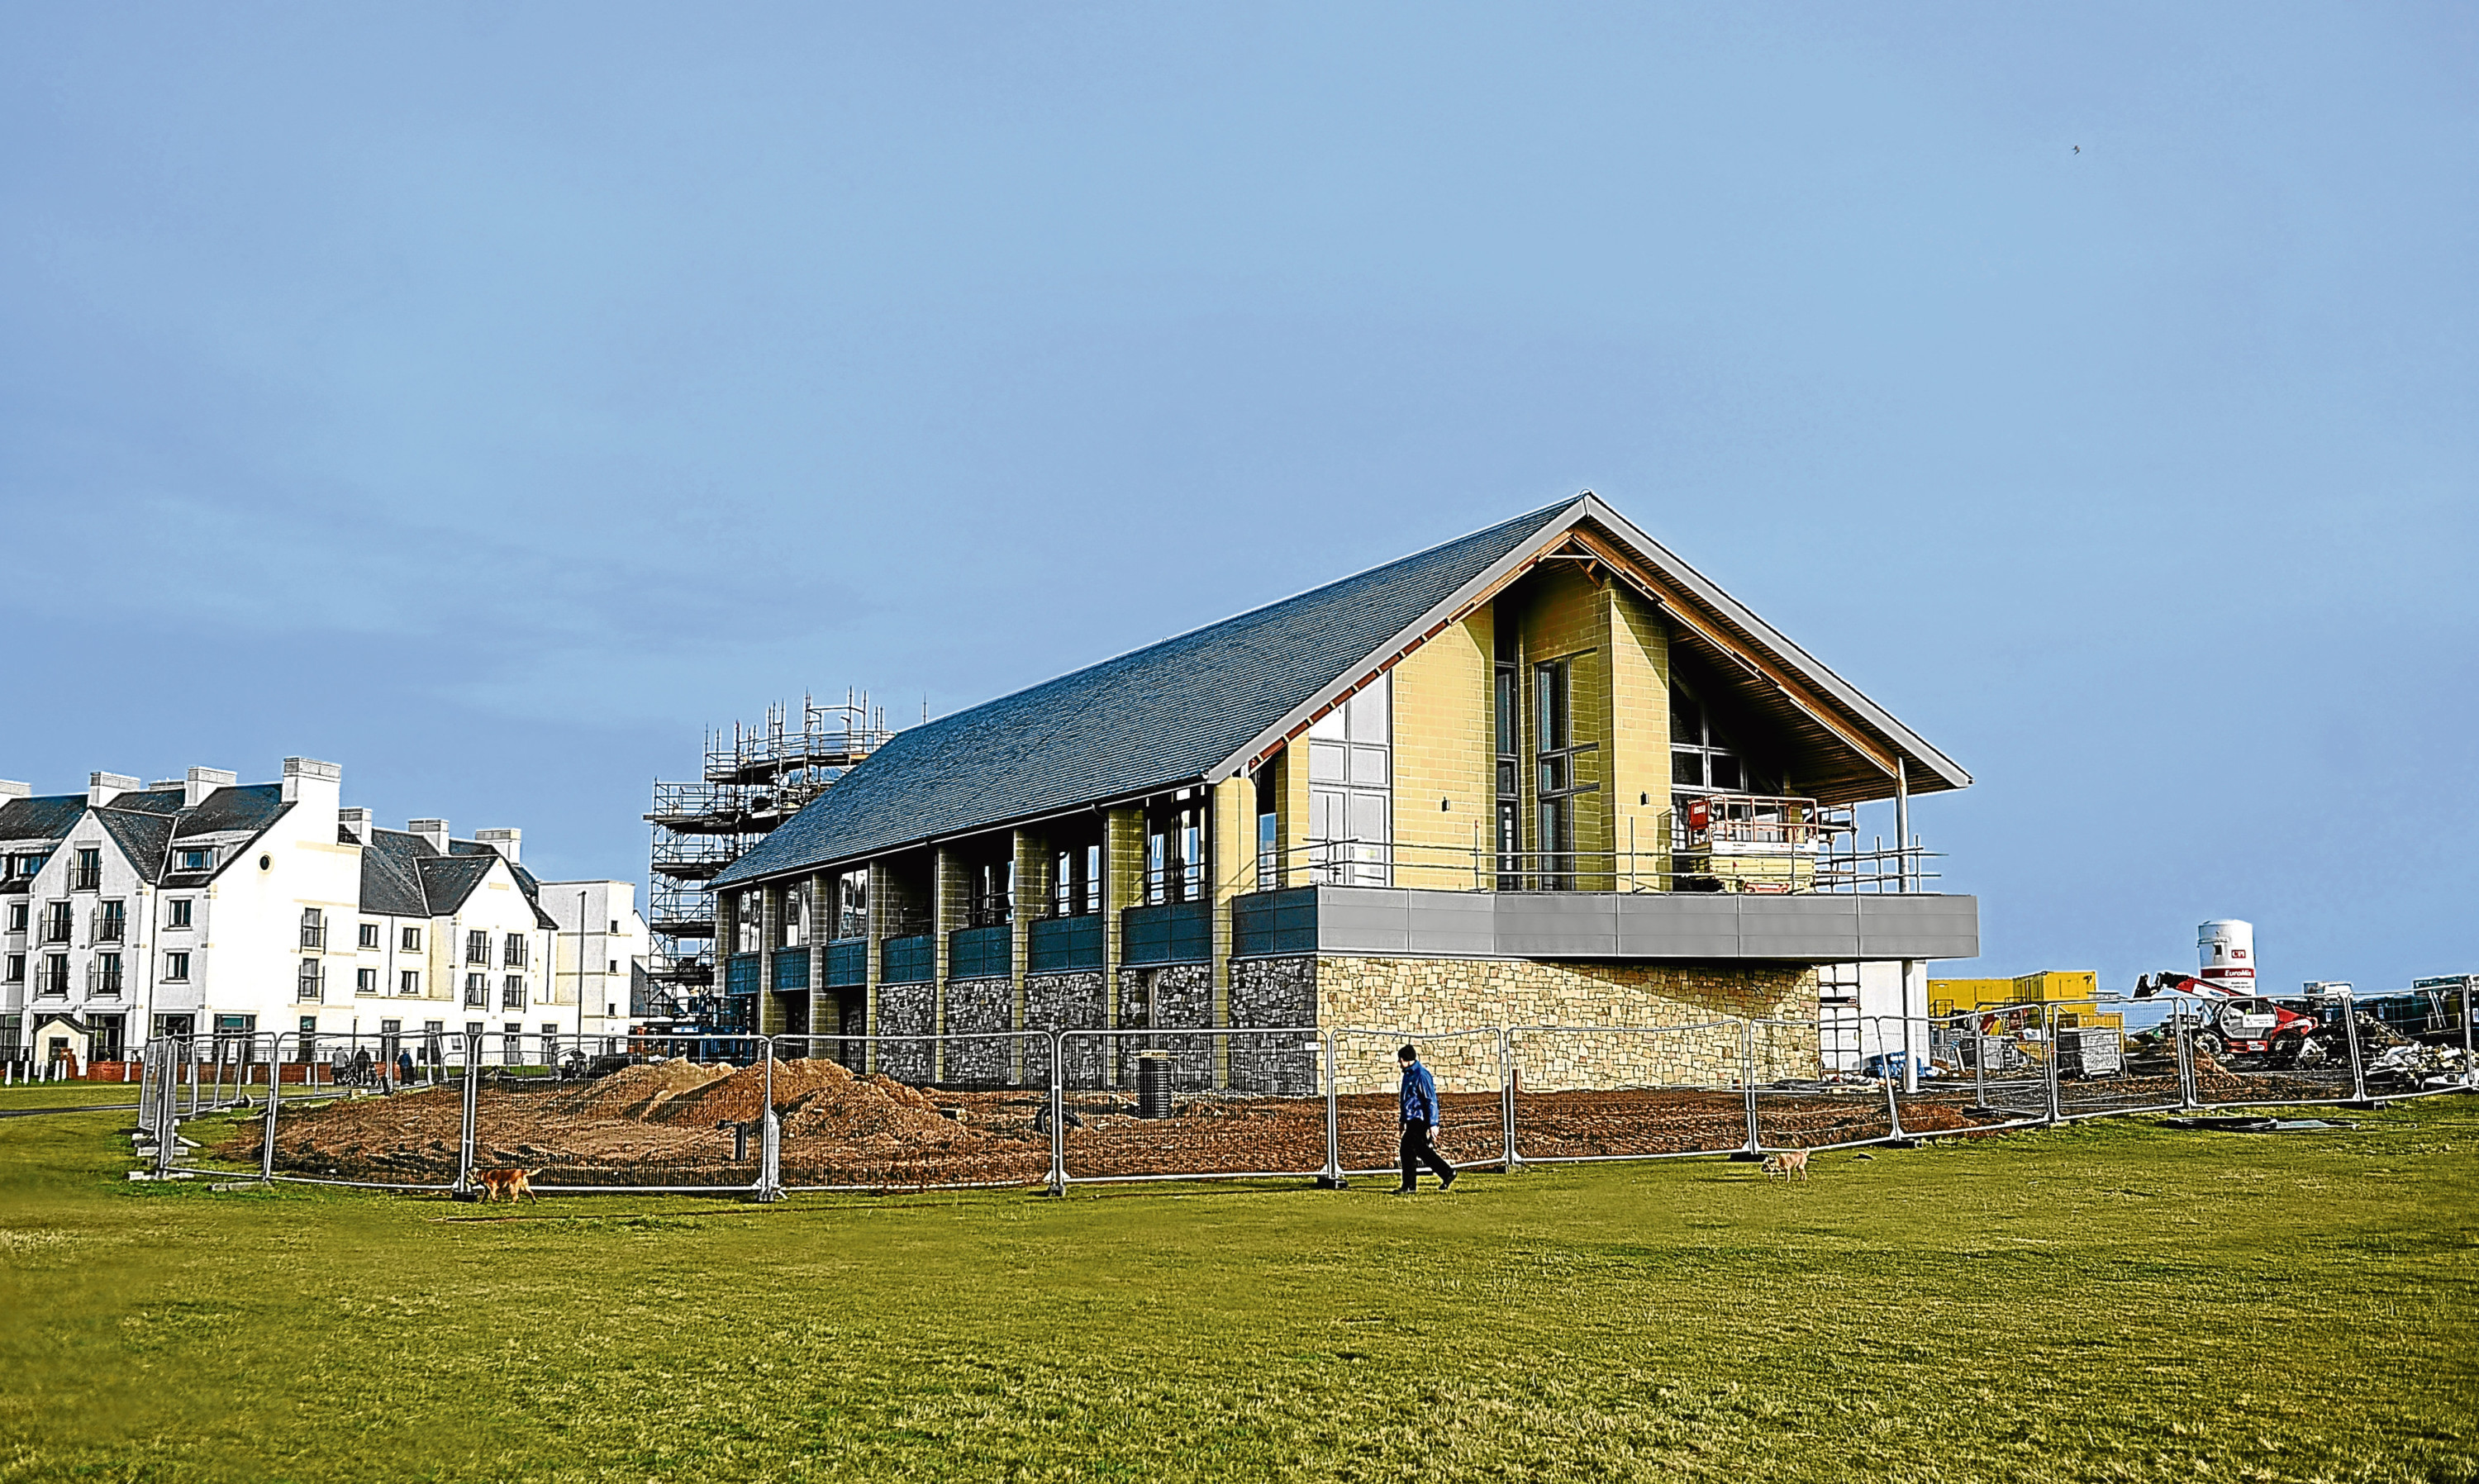 Ogilvie has constructed a large extension to the golf centre at Carnoustie ahead of The Open this summer.